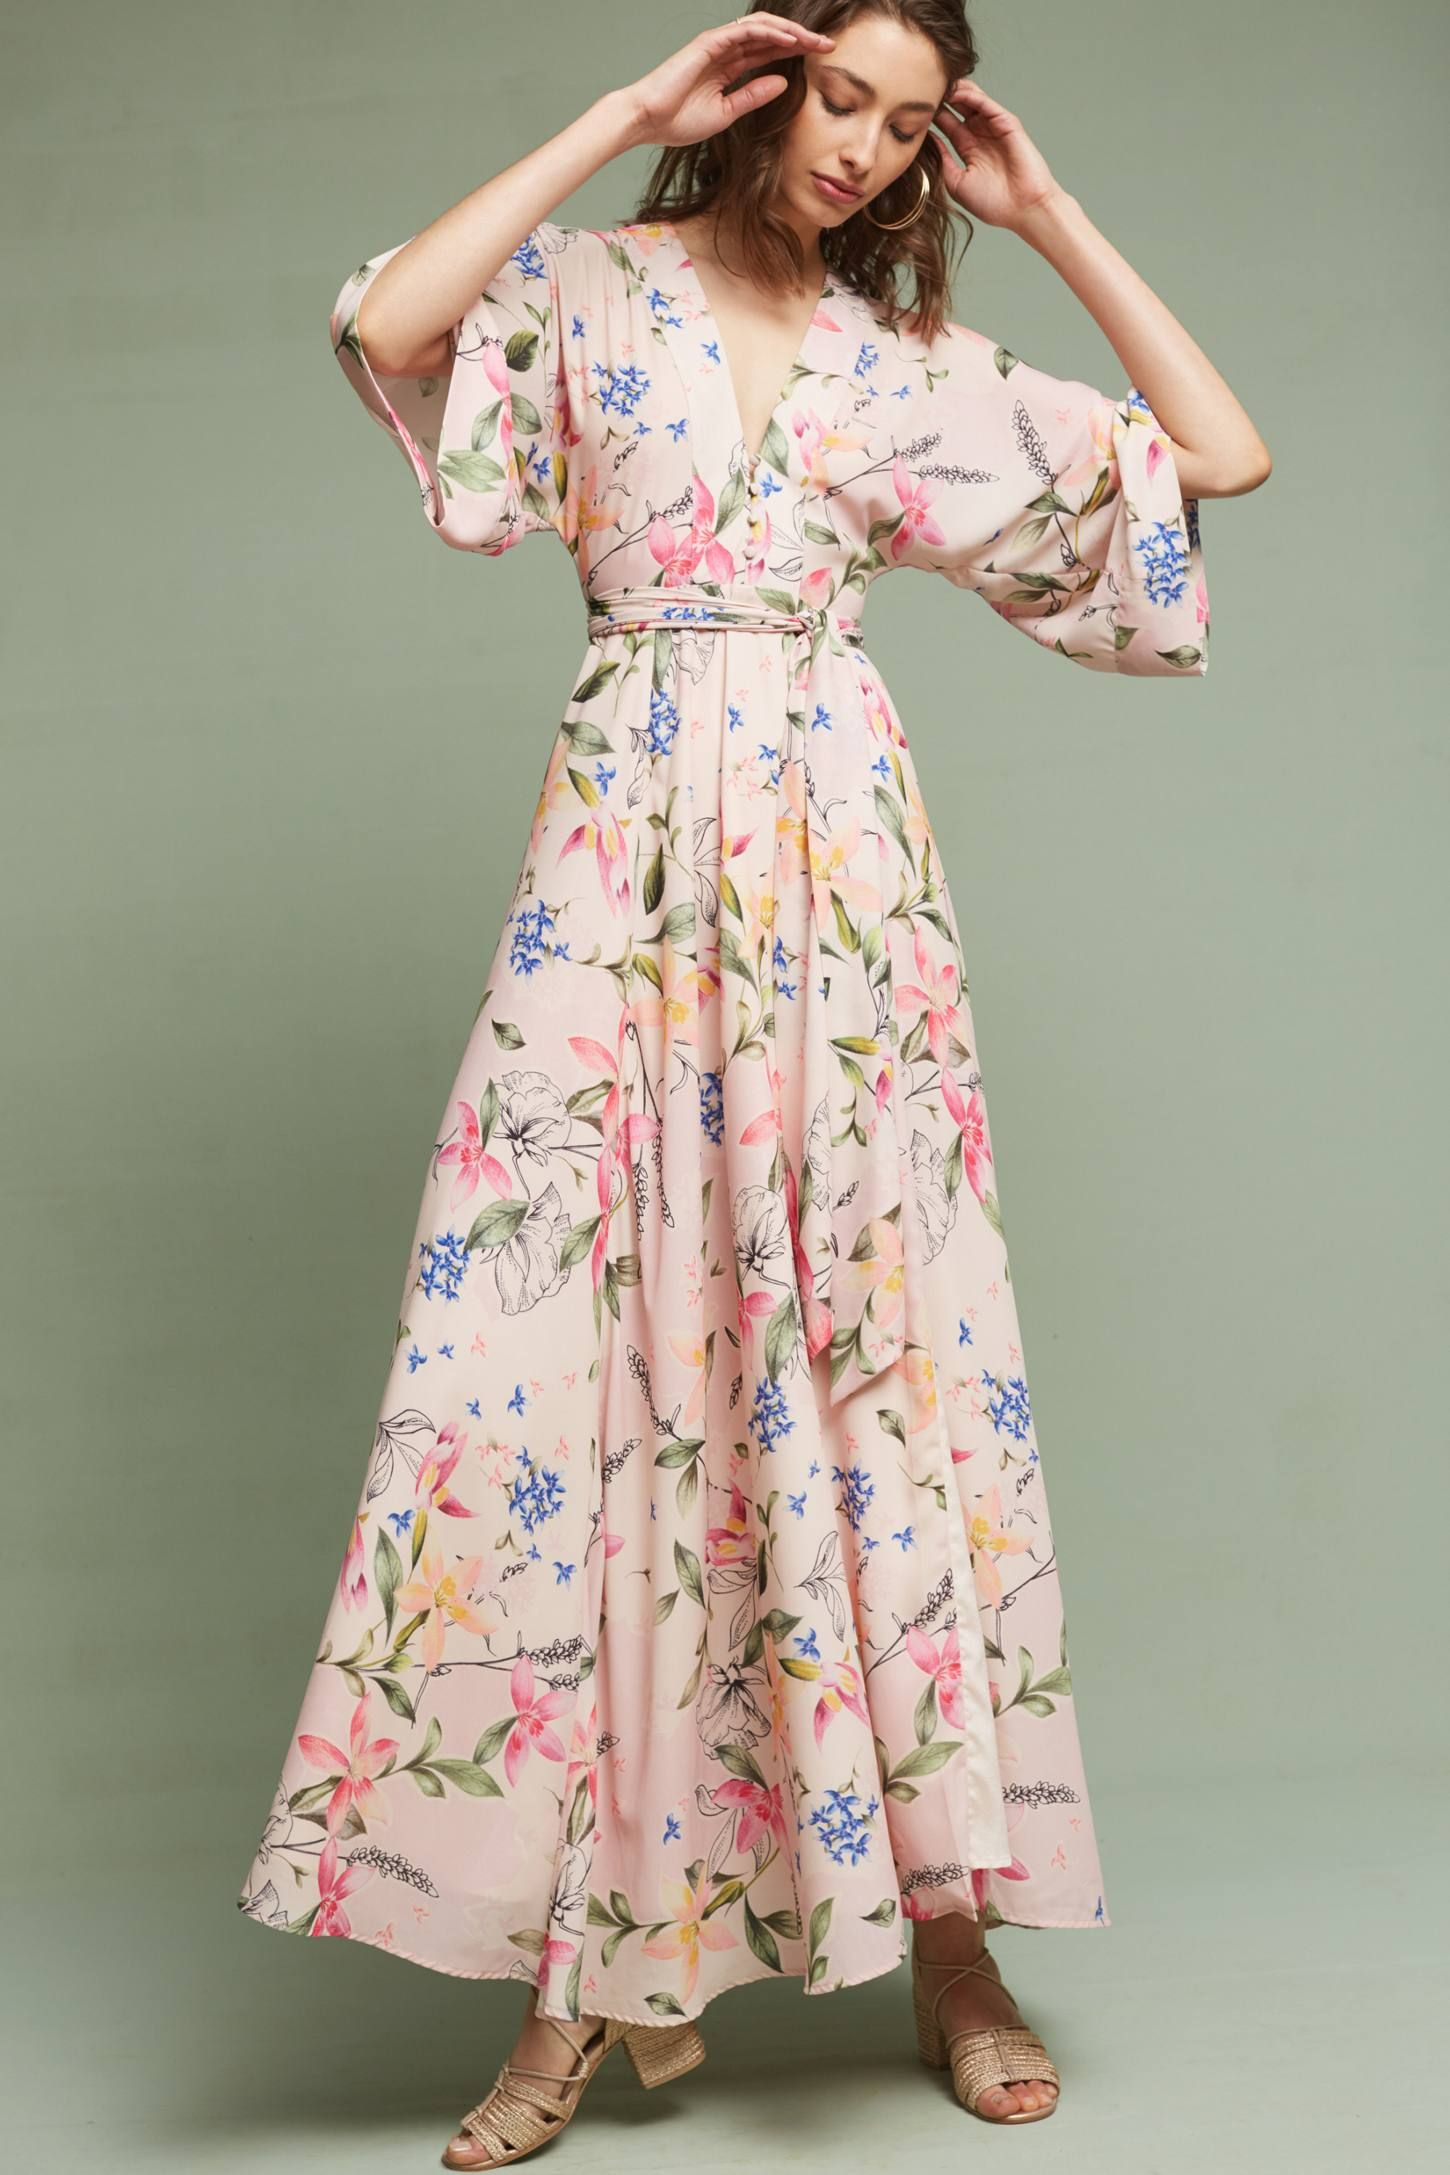 Floral Kimono Maxi Dress Floral Dresses Long Maxi Dress Kimono Maxi Dress